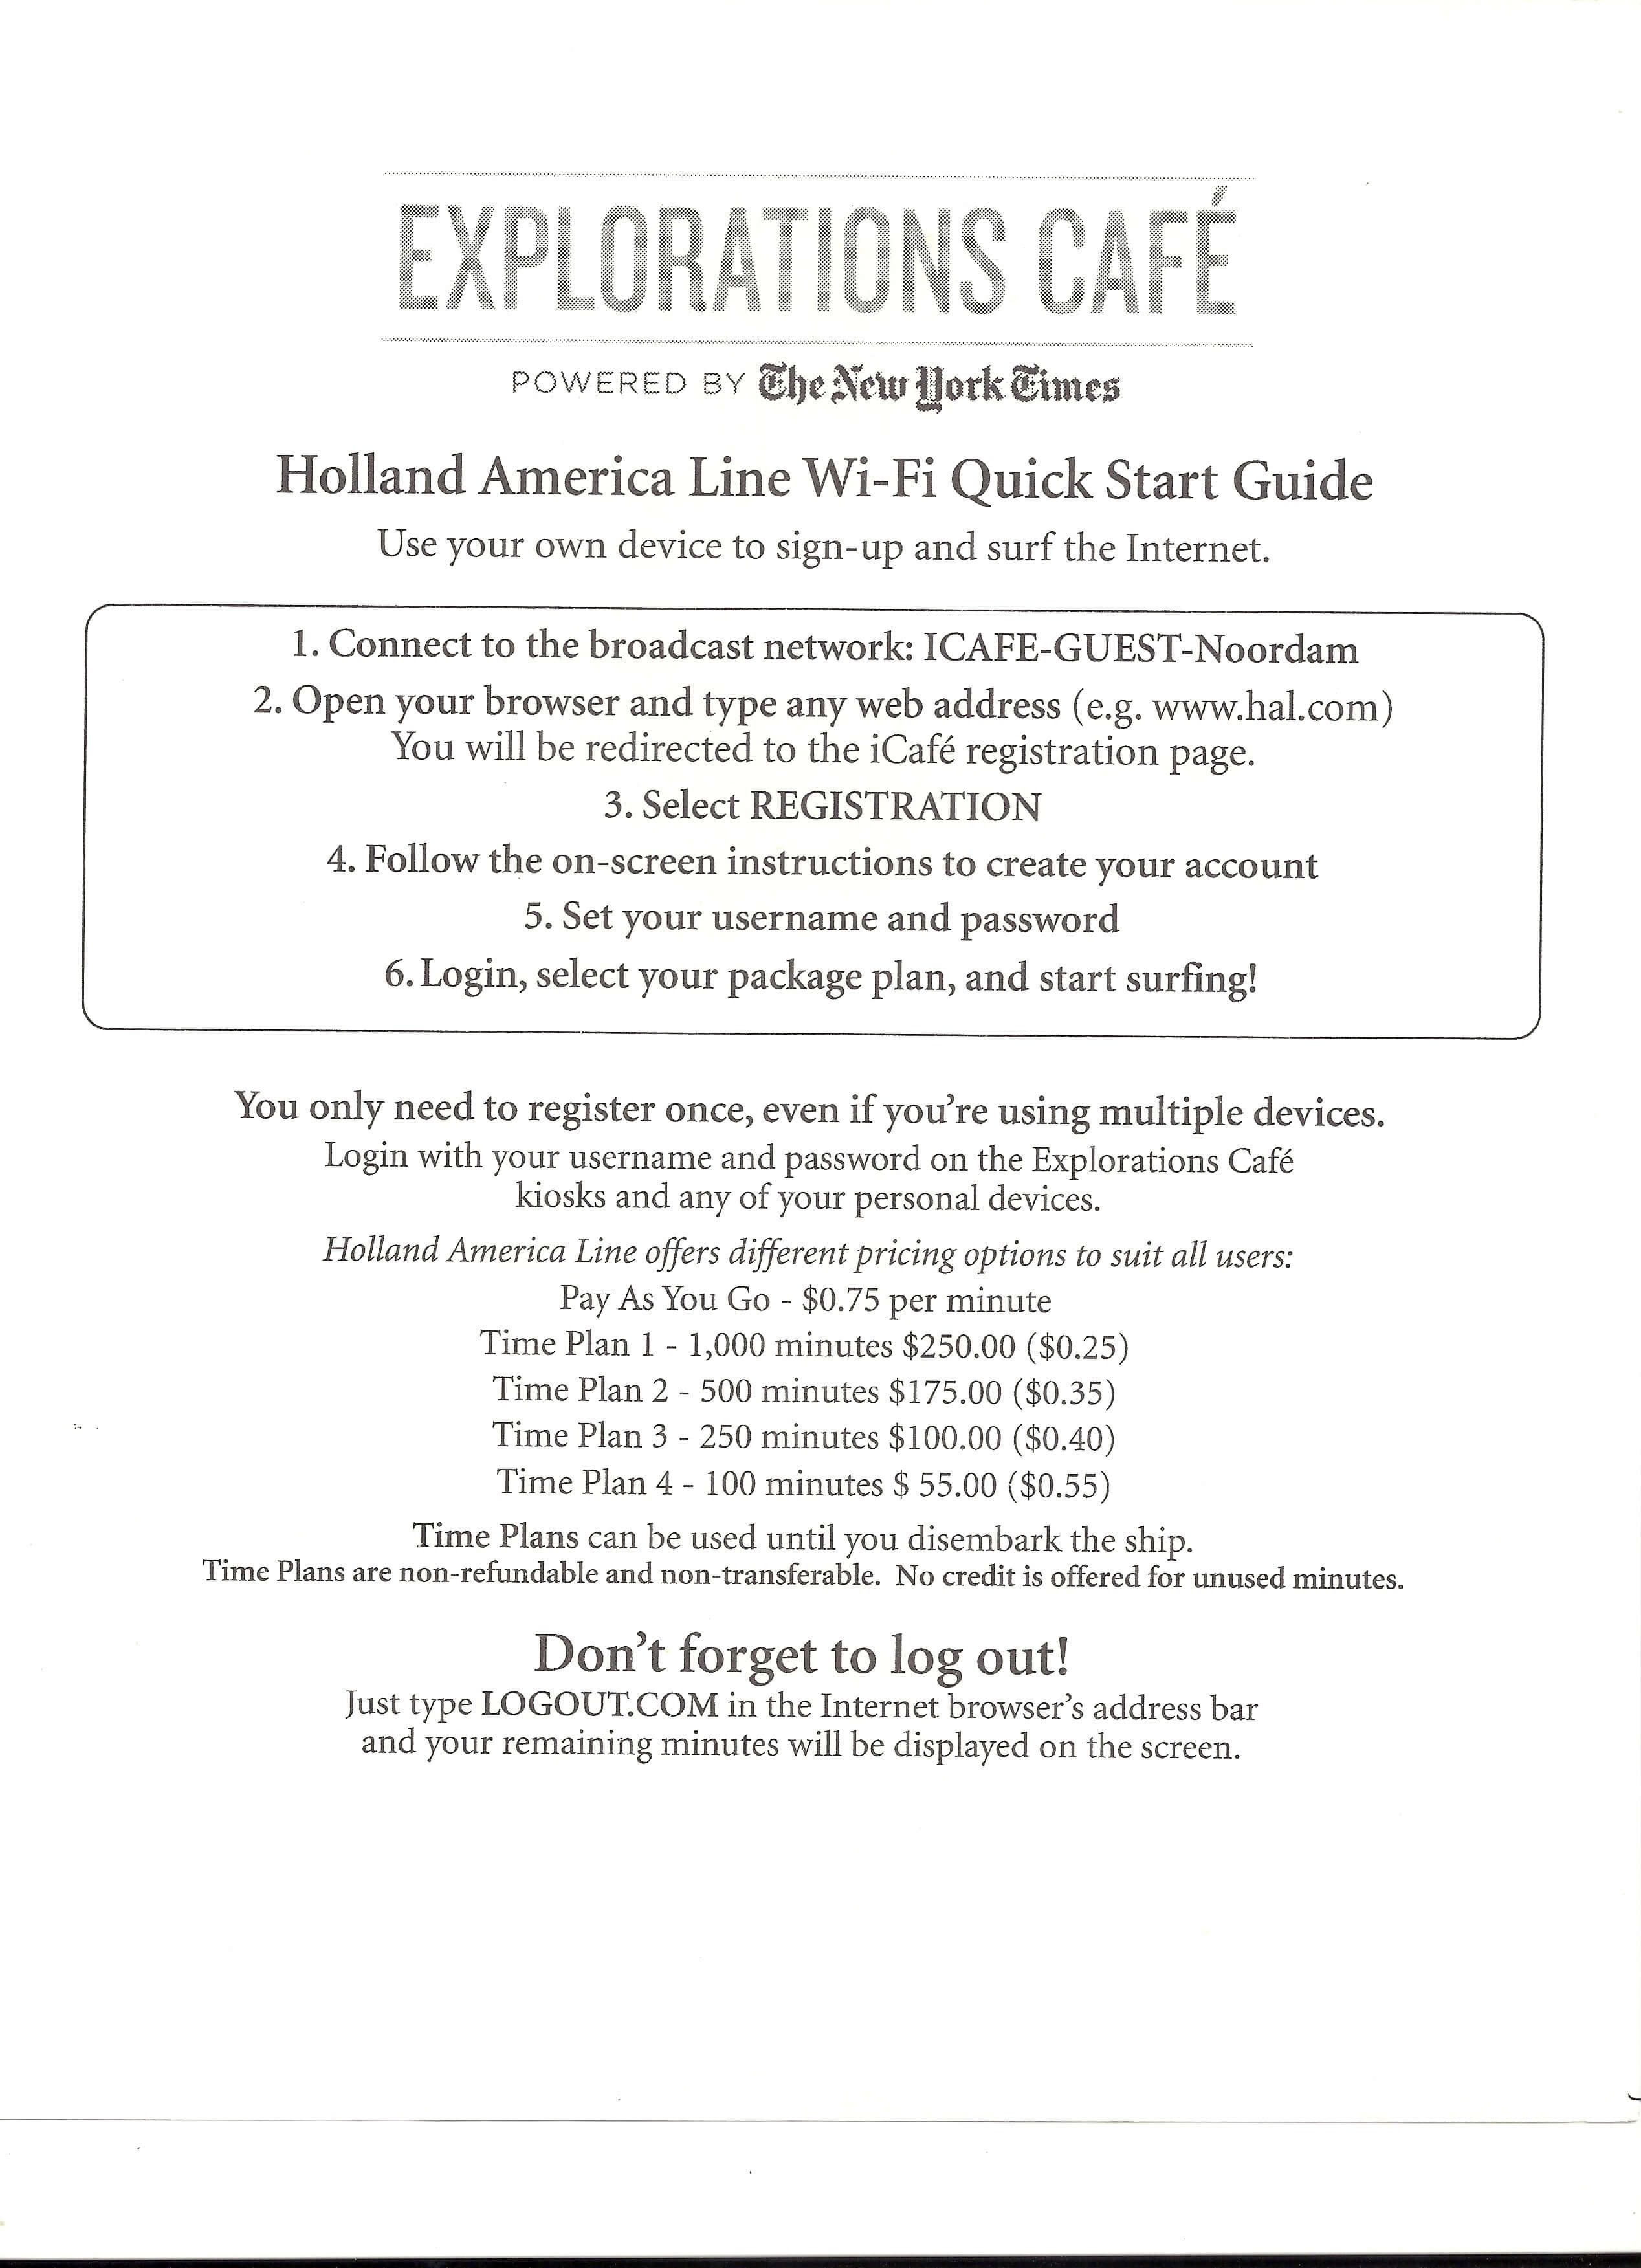 Holland America Wi-Fi prices